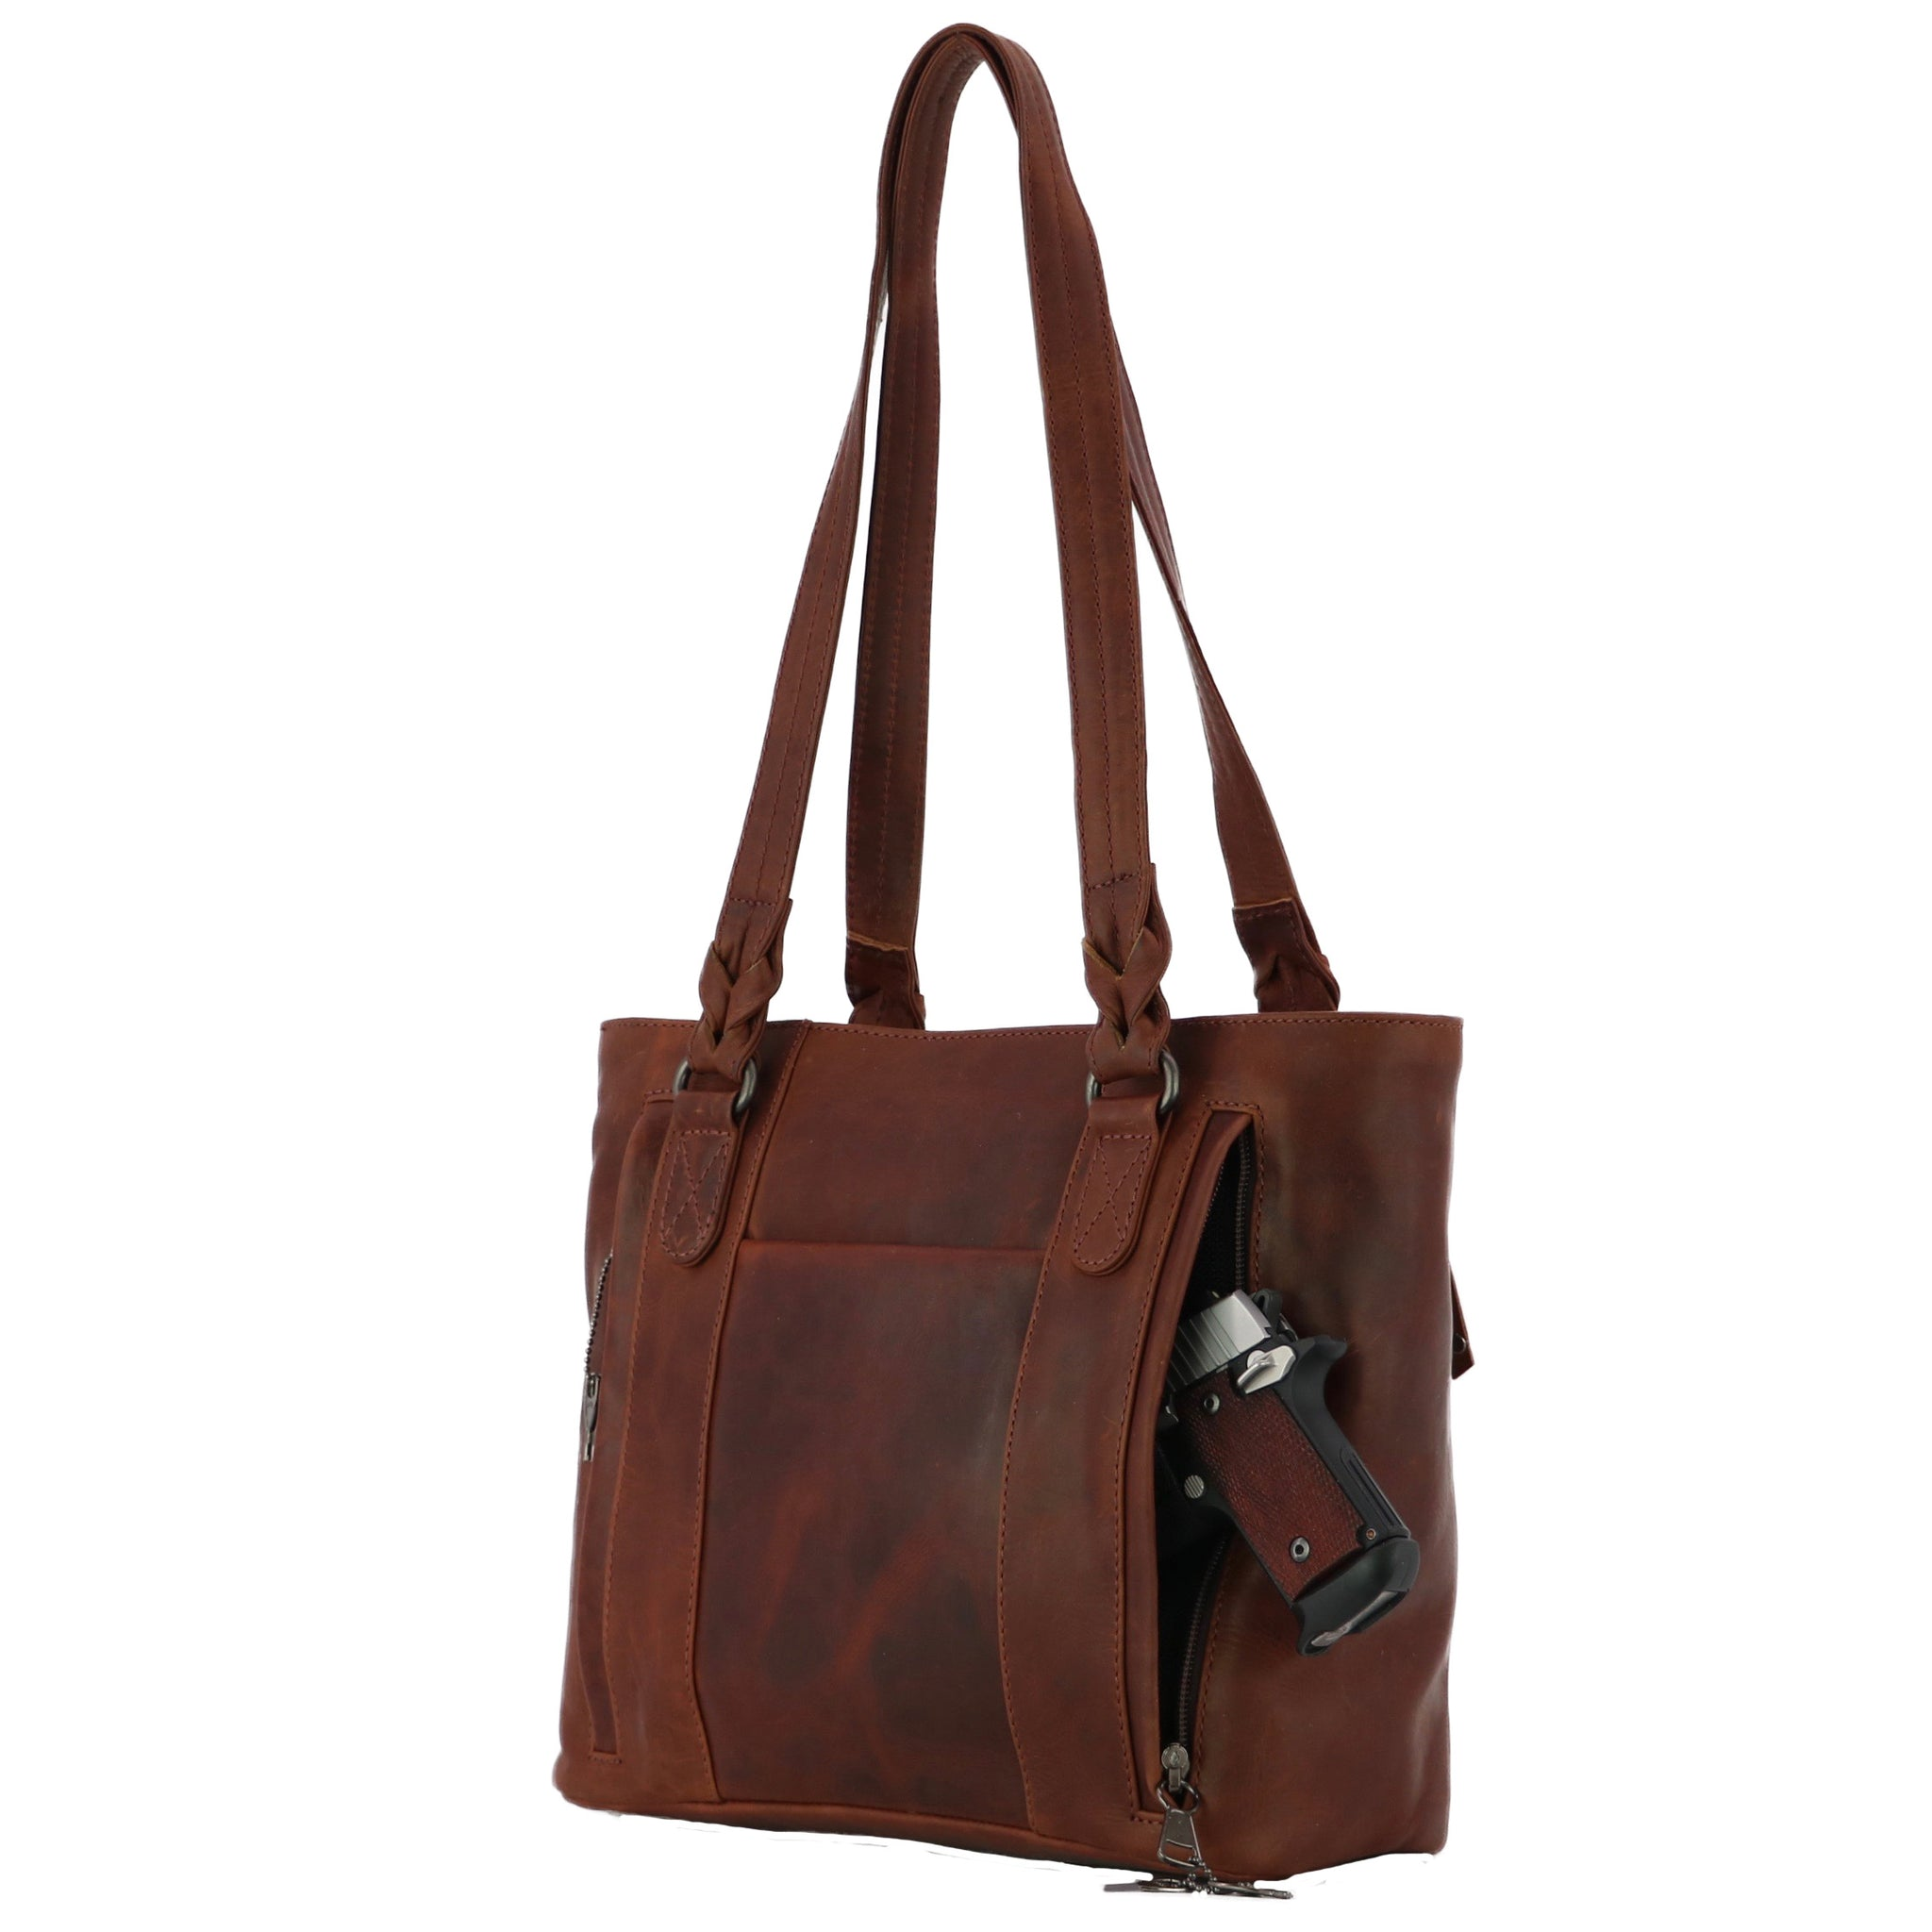 Concealed Carry Tote Purse by High Caliber Handbag